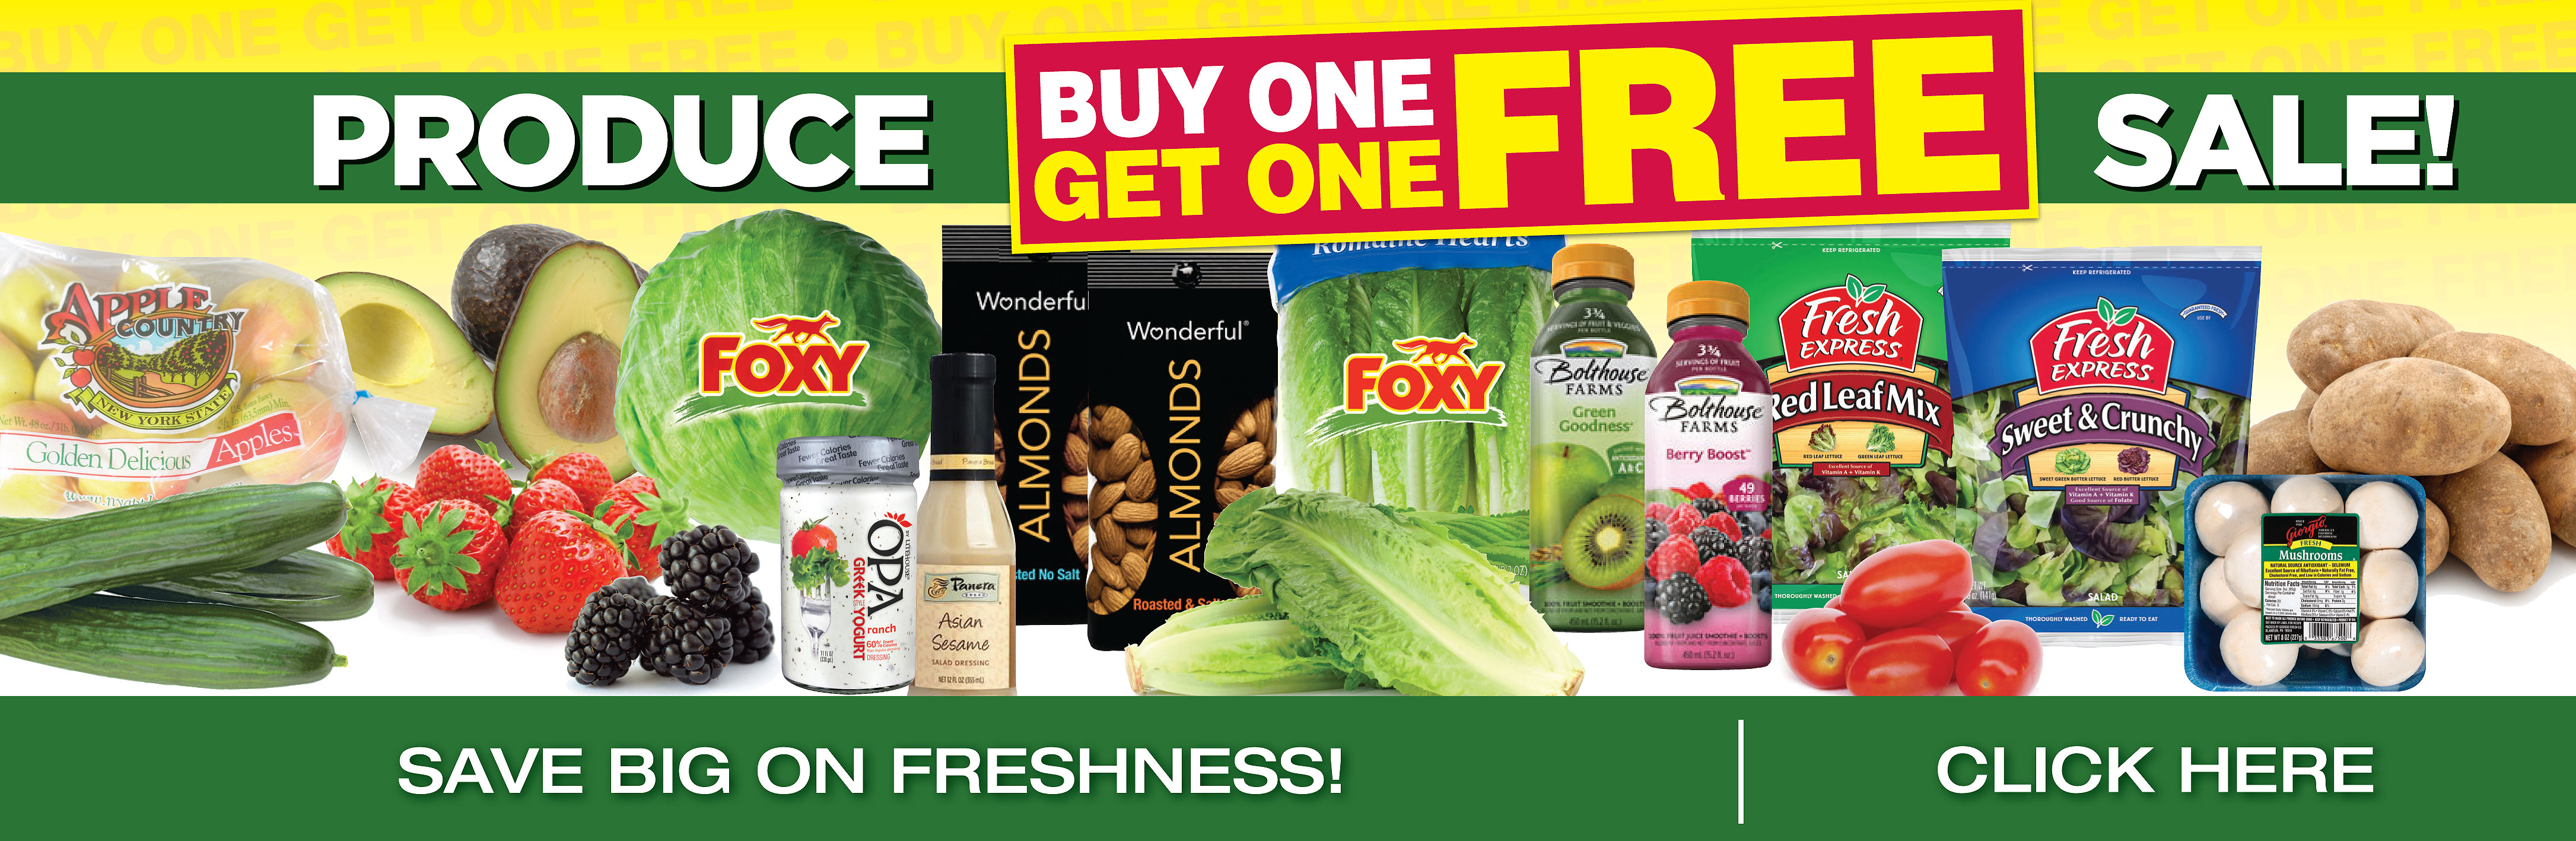 Produce Buy One Get One Free Sale